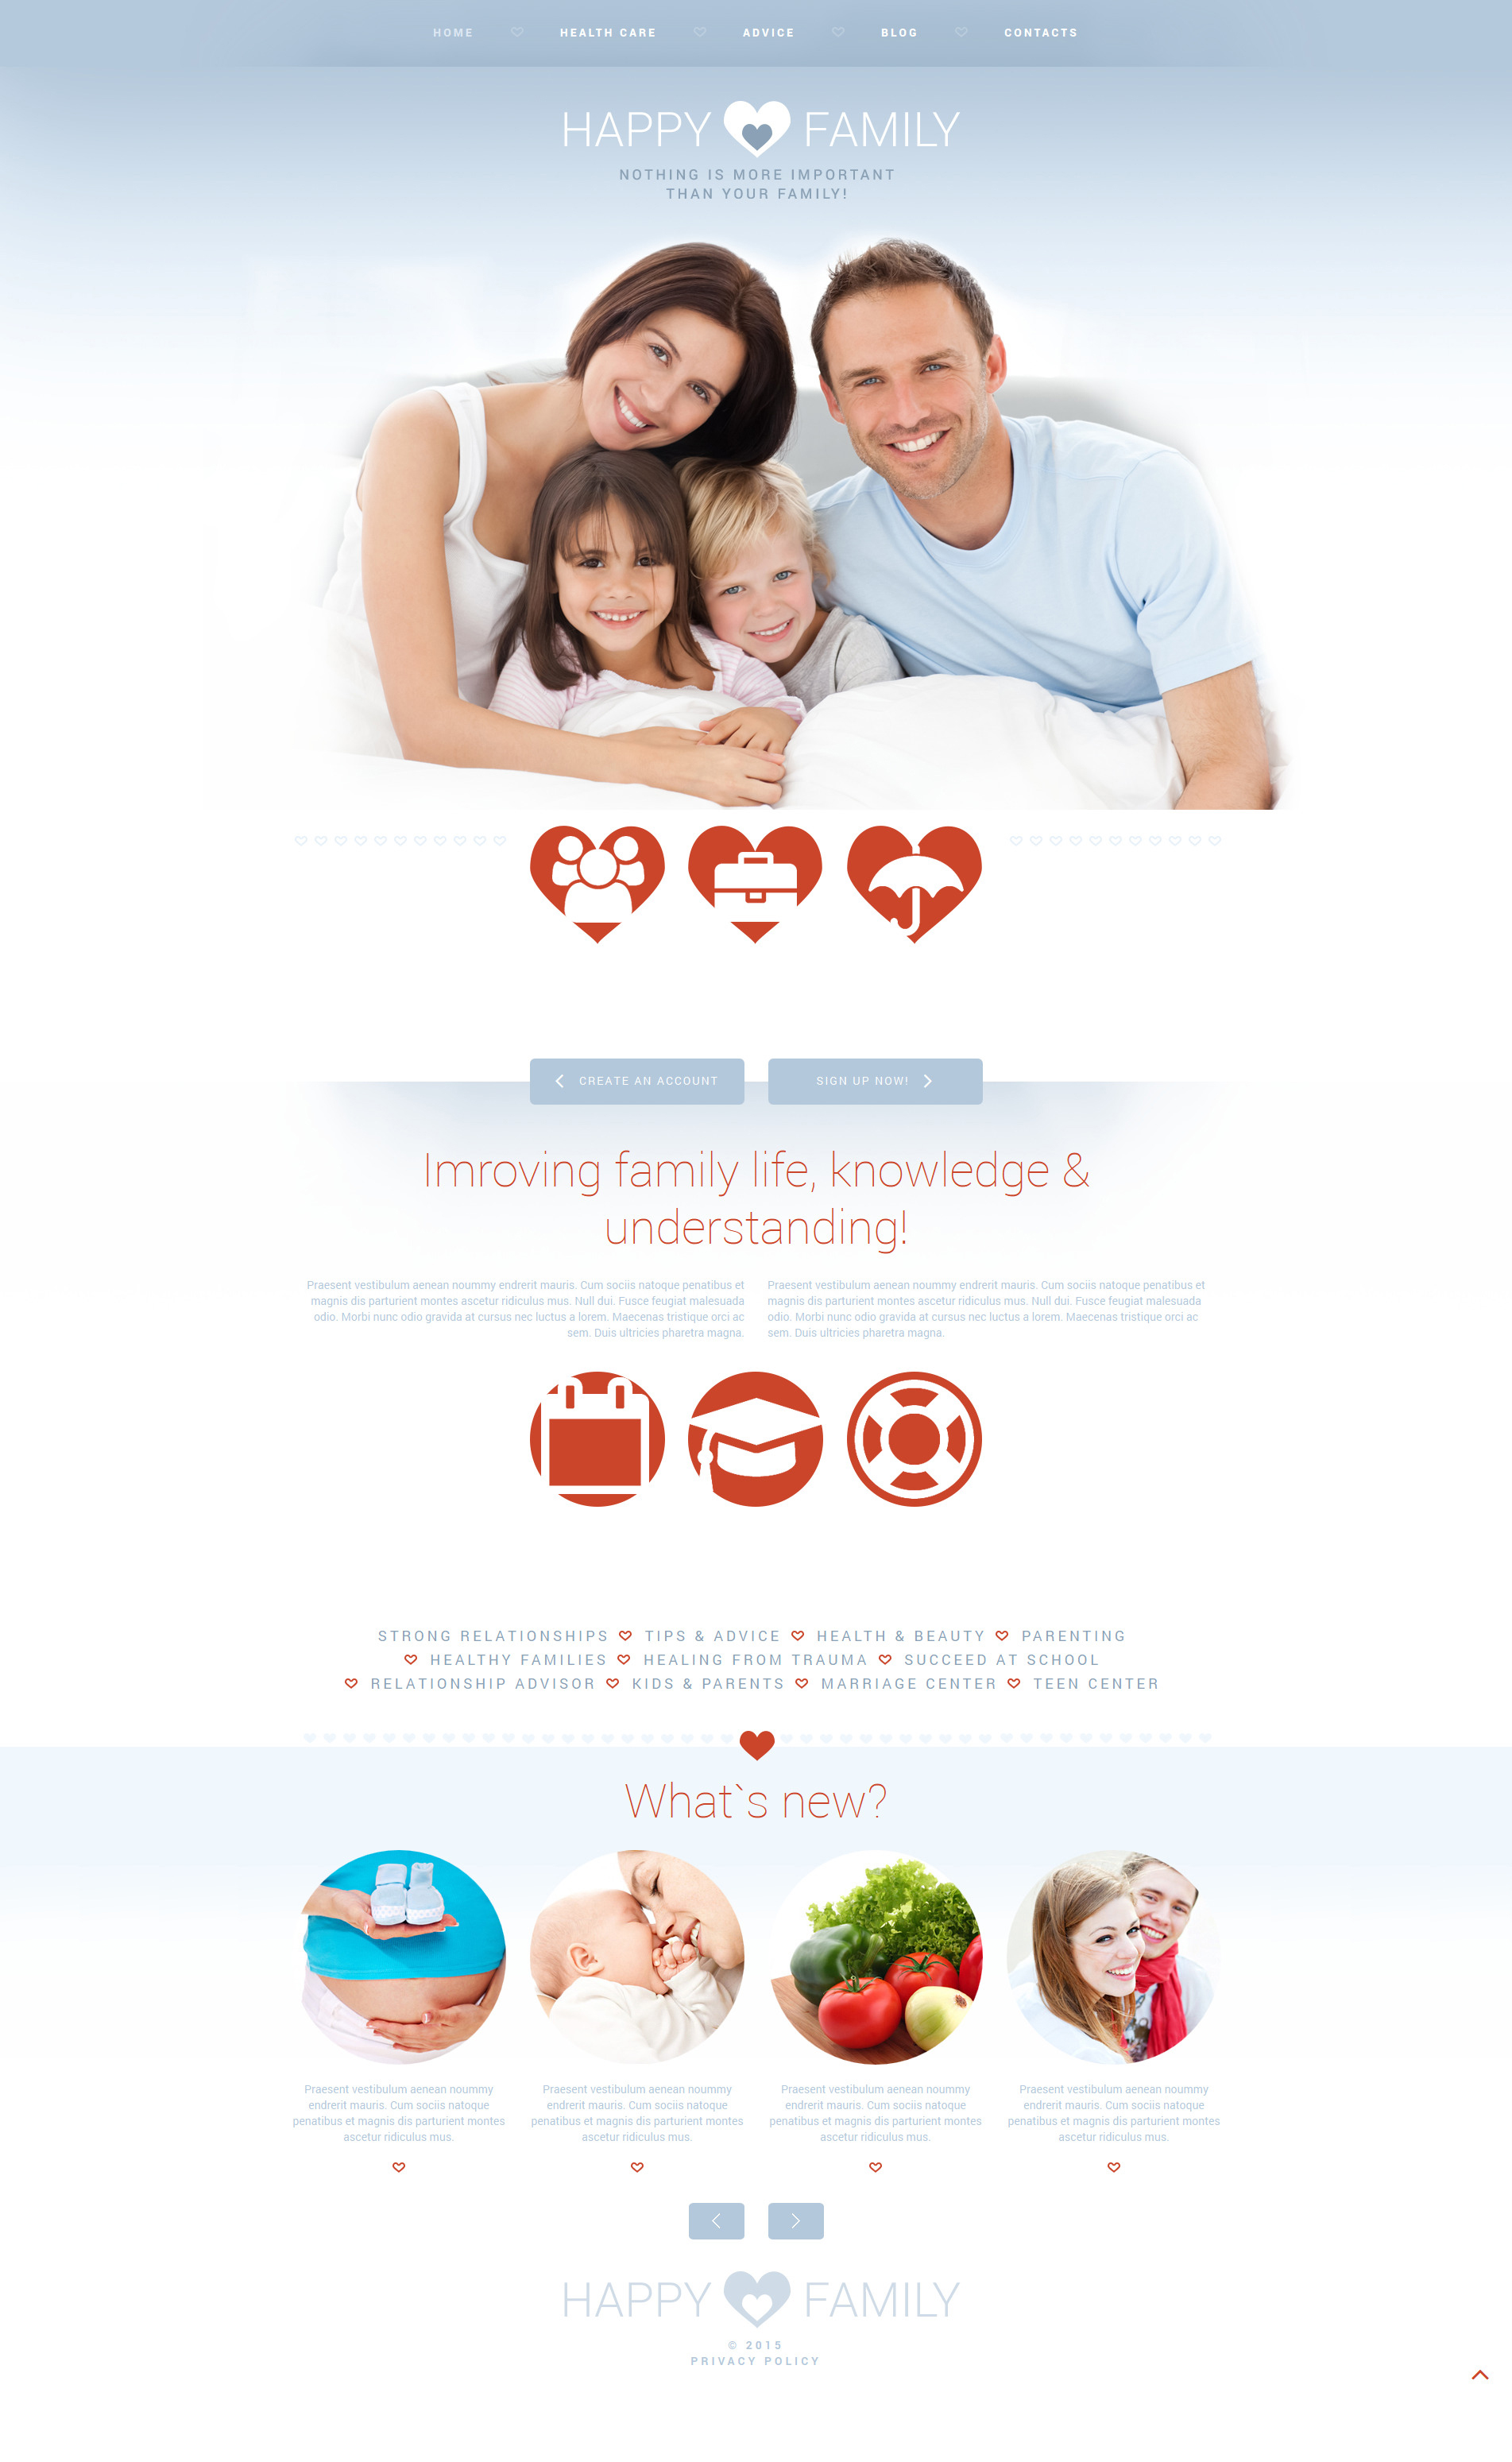 The Family Life Portal Joomla Design 53005, one of the best Joomla templates of its kind (family), also known as family life portal Joomla template, site Joomla template, harmony Joomla template, hearth Joomla template, home Joomla template, children Joomla template, baby Joomla template, child Joomla template, mother Joomla template, father Joomla template, grandparents Joomla template, relatives Joomla template, relationship Joomla template, close care Joomla template, happiness Joomla template, education Joomla template, youth Joomla template, health Joomla template, kids Joomla template, fun Joomla template, advices Joomla template, events Joomla template, entertainment Joomla template, information Joomla template, support Joomla template, directory Joomla template, psychology Joomla template, services Joomla template, culture Joomla template, tips and related with family life portal, site, harmony, hearth, home, children, baby, child, mother, father, grandparents, relatives, relationship, close care, happiness, education, youth, health, kids, fun, advices, events, entertainment, information, support, directory, psychology, services, culture, tips, etc.